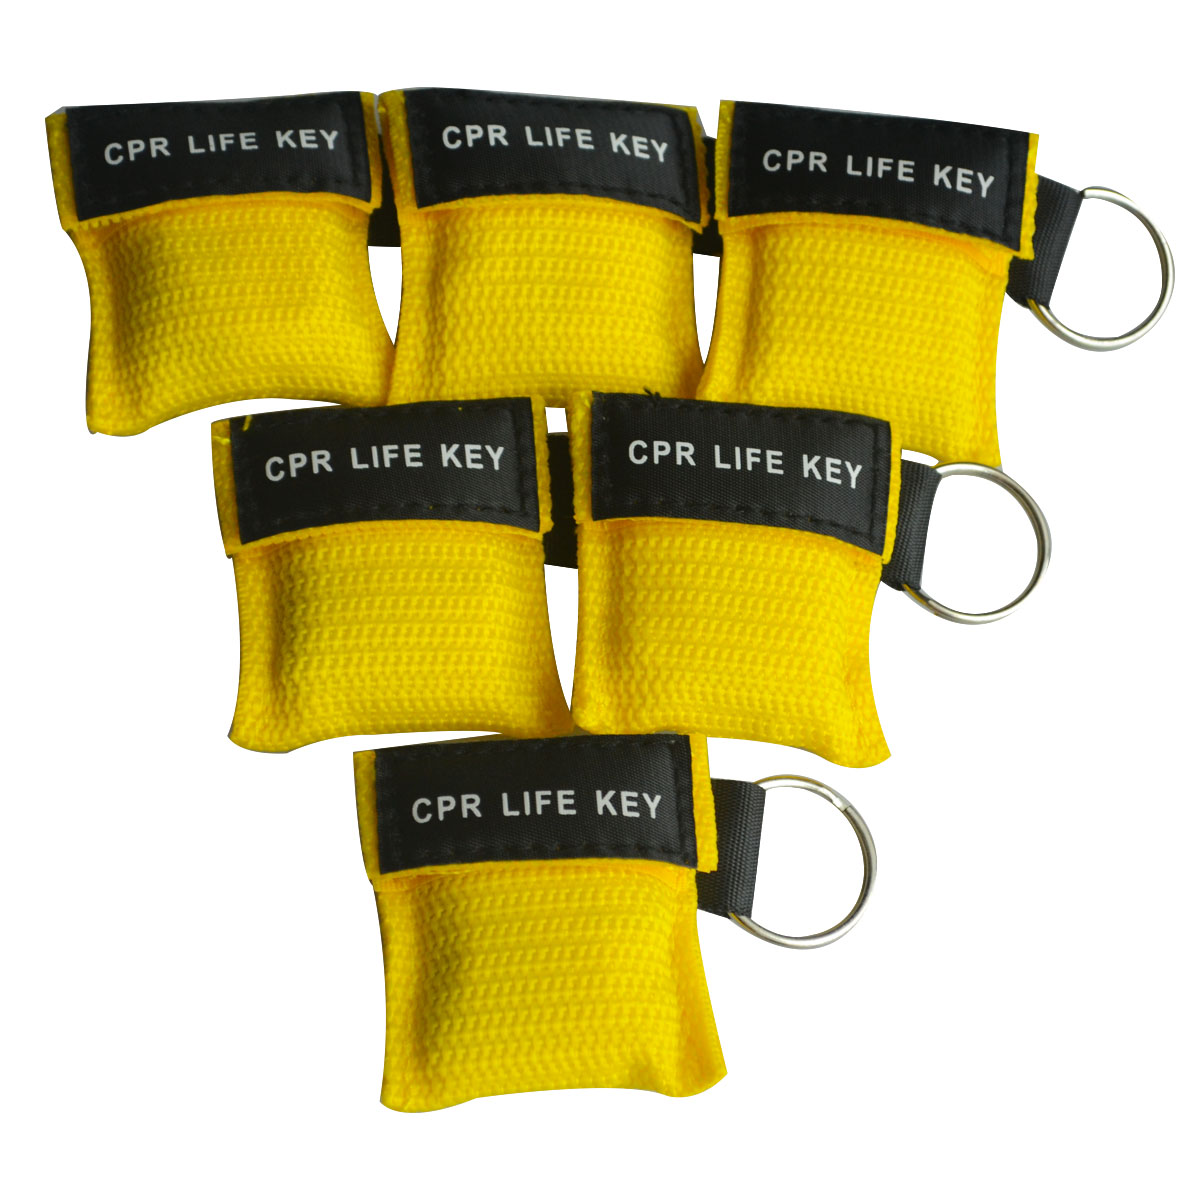 850Pcs First Aid CPR Mask CPR Resuscitator Key Ring Keychain One Way Valve Emergency Rescue Kit With Yellow Nylon Pouch 500pcs pack cpr resuscitator cpr face protect mask with keychain key ring for first aid training teaching kit emergency use